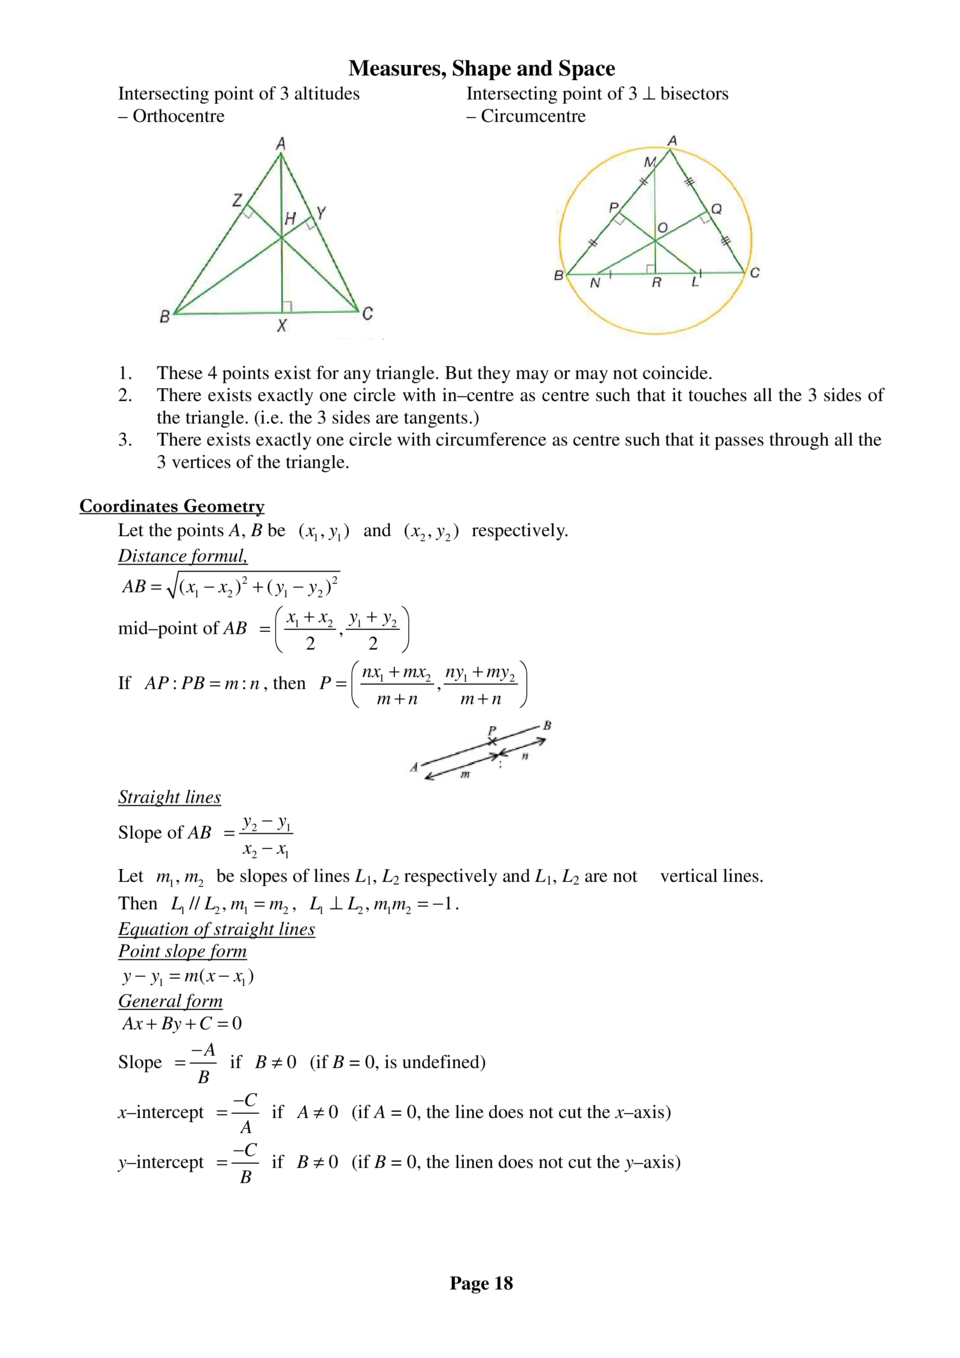 Dse maths simplebooklet measures shape and space intersecting point of 3 altitudes orthocentre 1 2 3 falaconquin